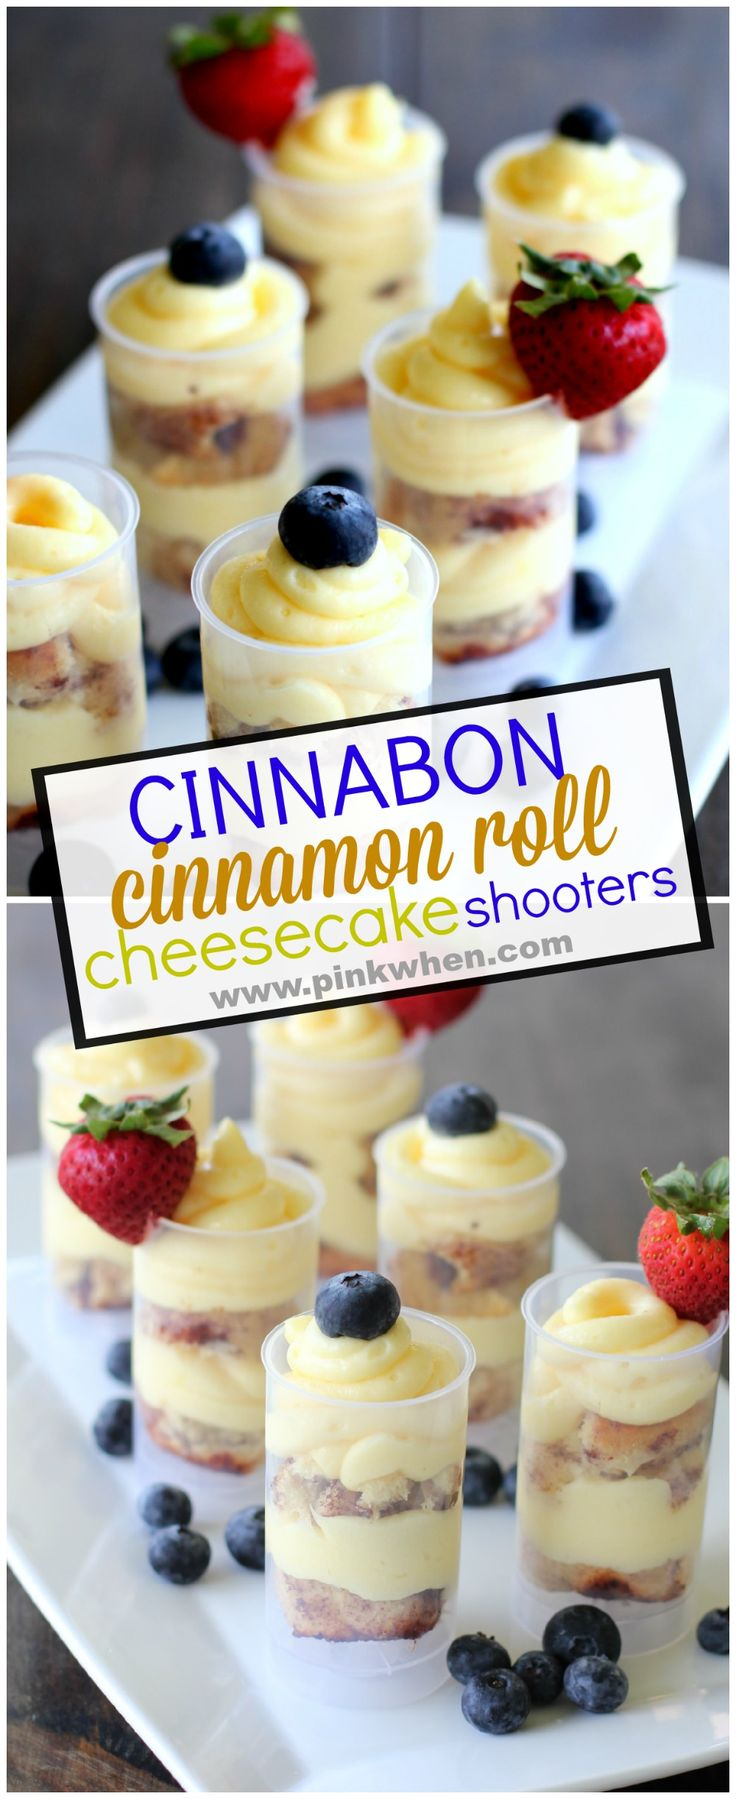 Cinnabon Cinnamon Roll Cheesecake Shooter www.pinkwhen.com